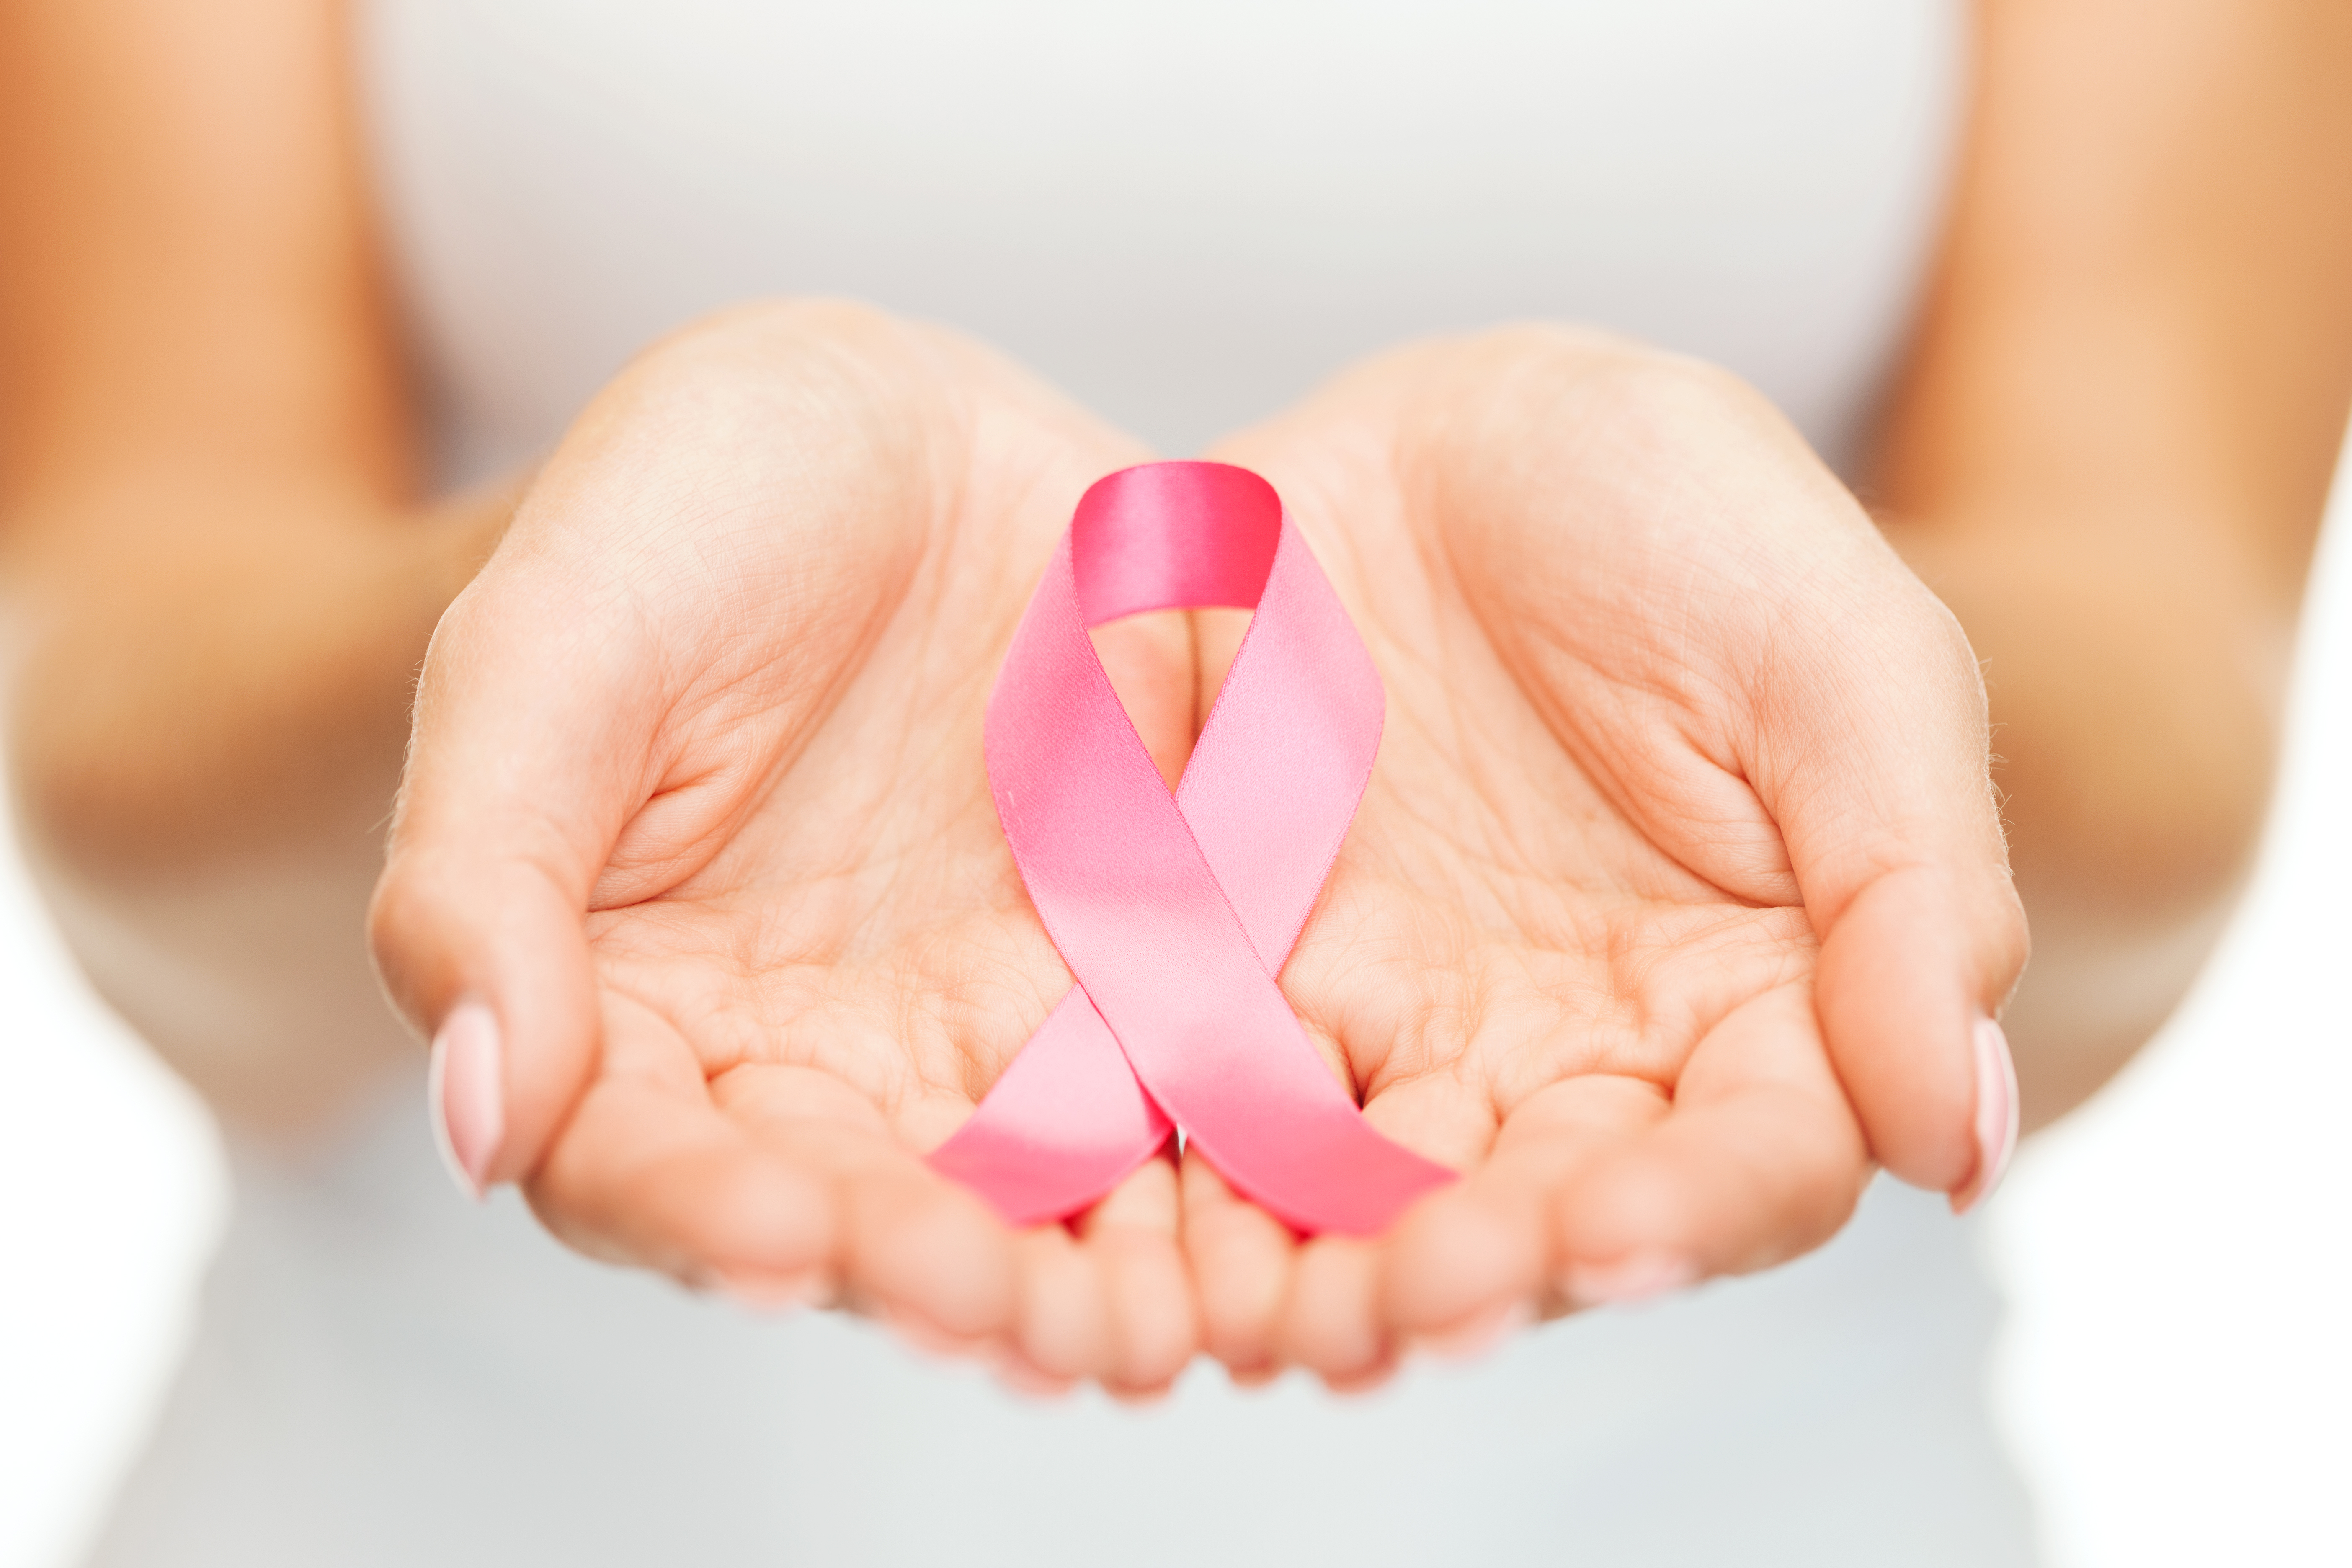 Double Mastectomy Doesnt Improve Breast Cancer Survival Rate, According To New Research foto